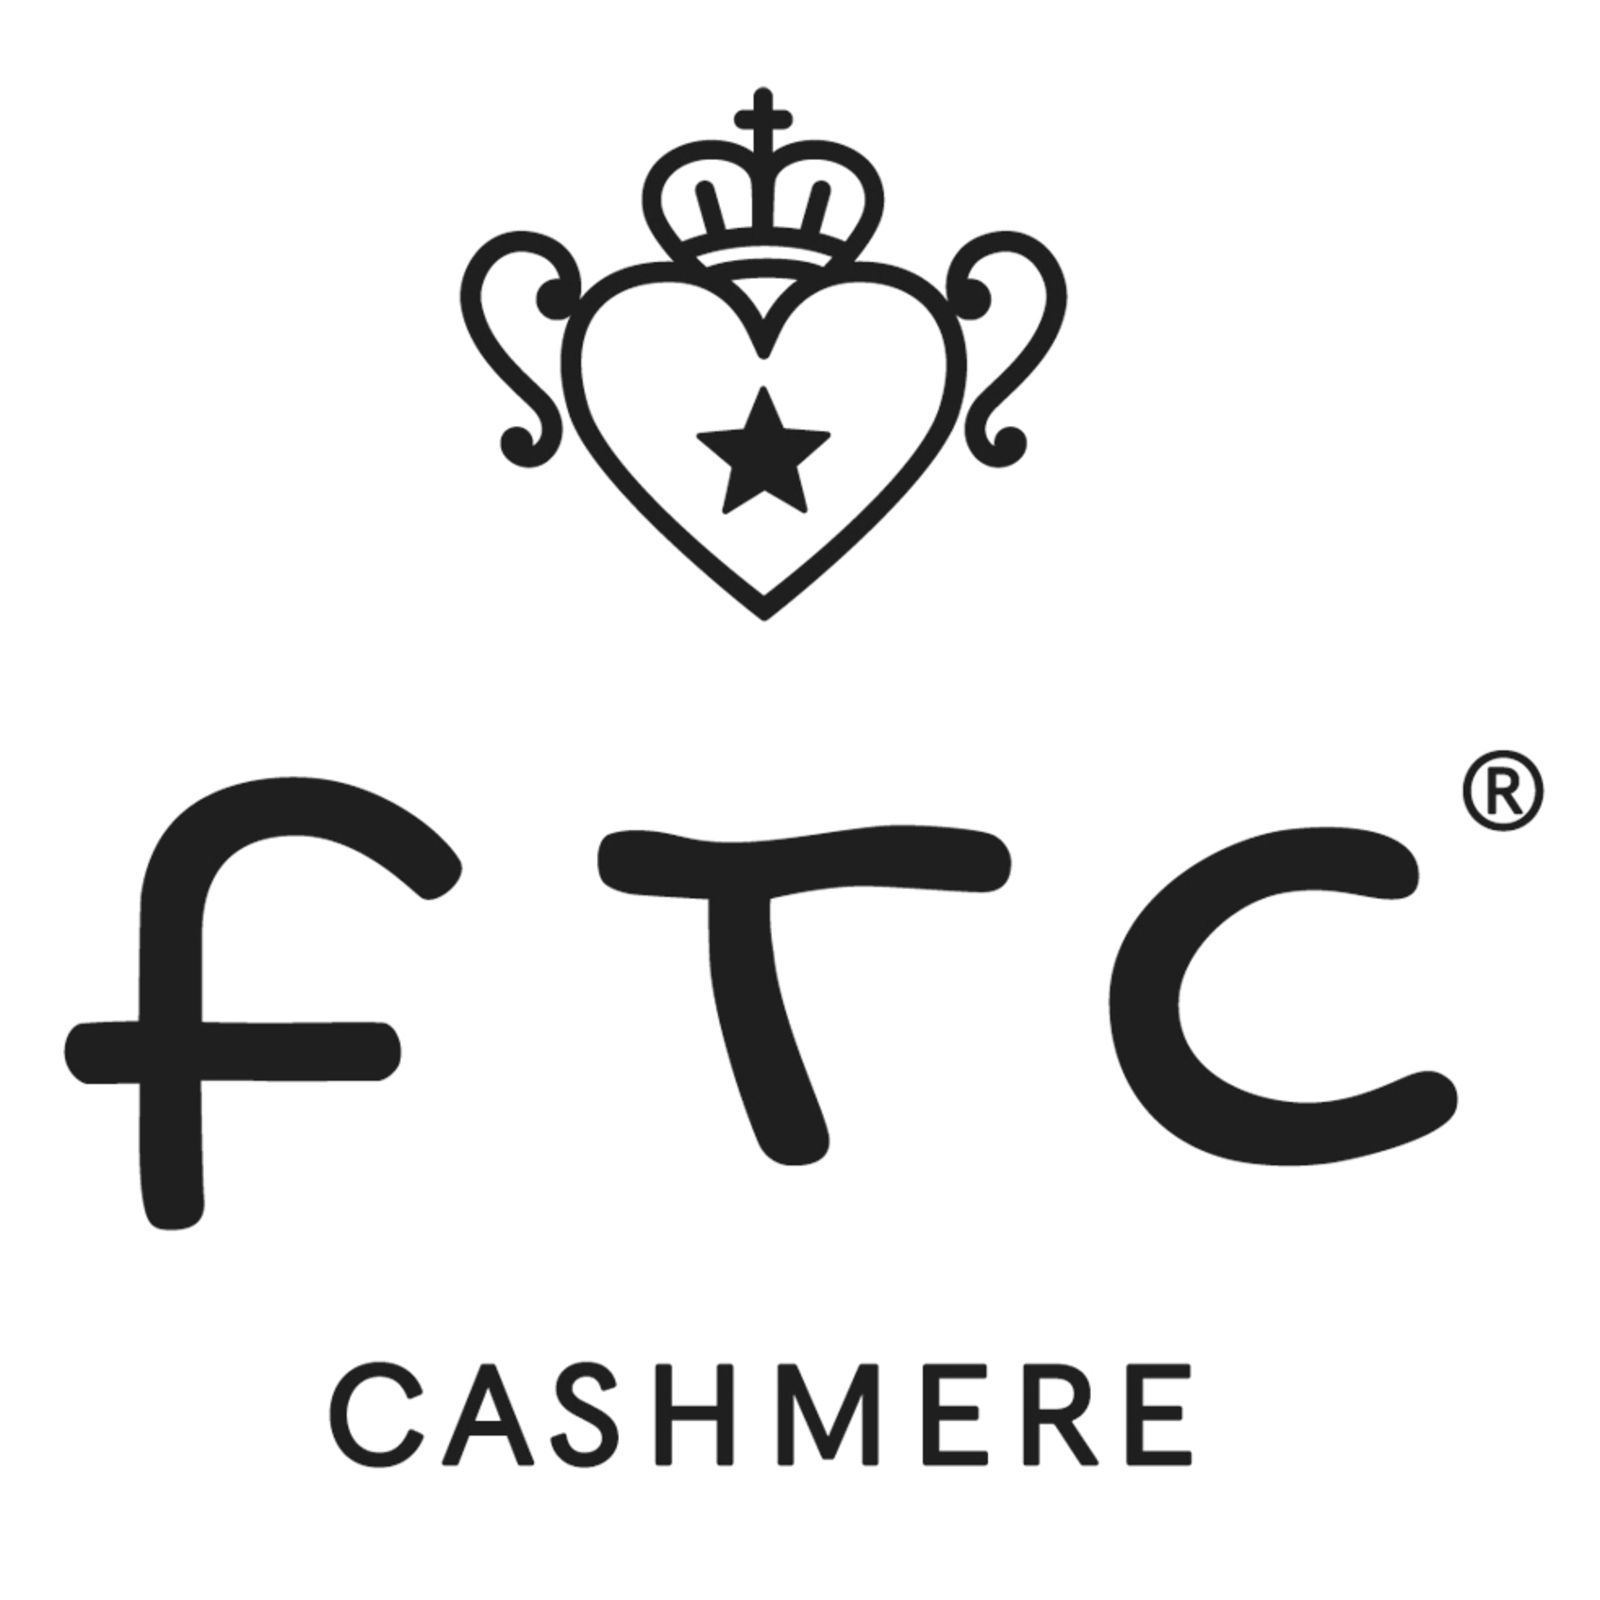 FTC Cashmere (Image 1)